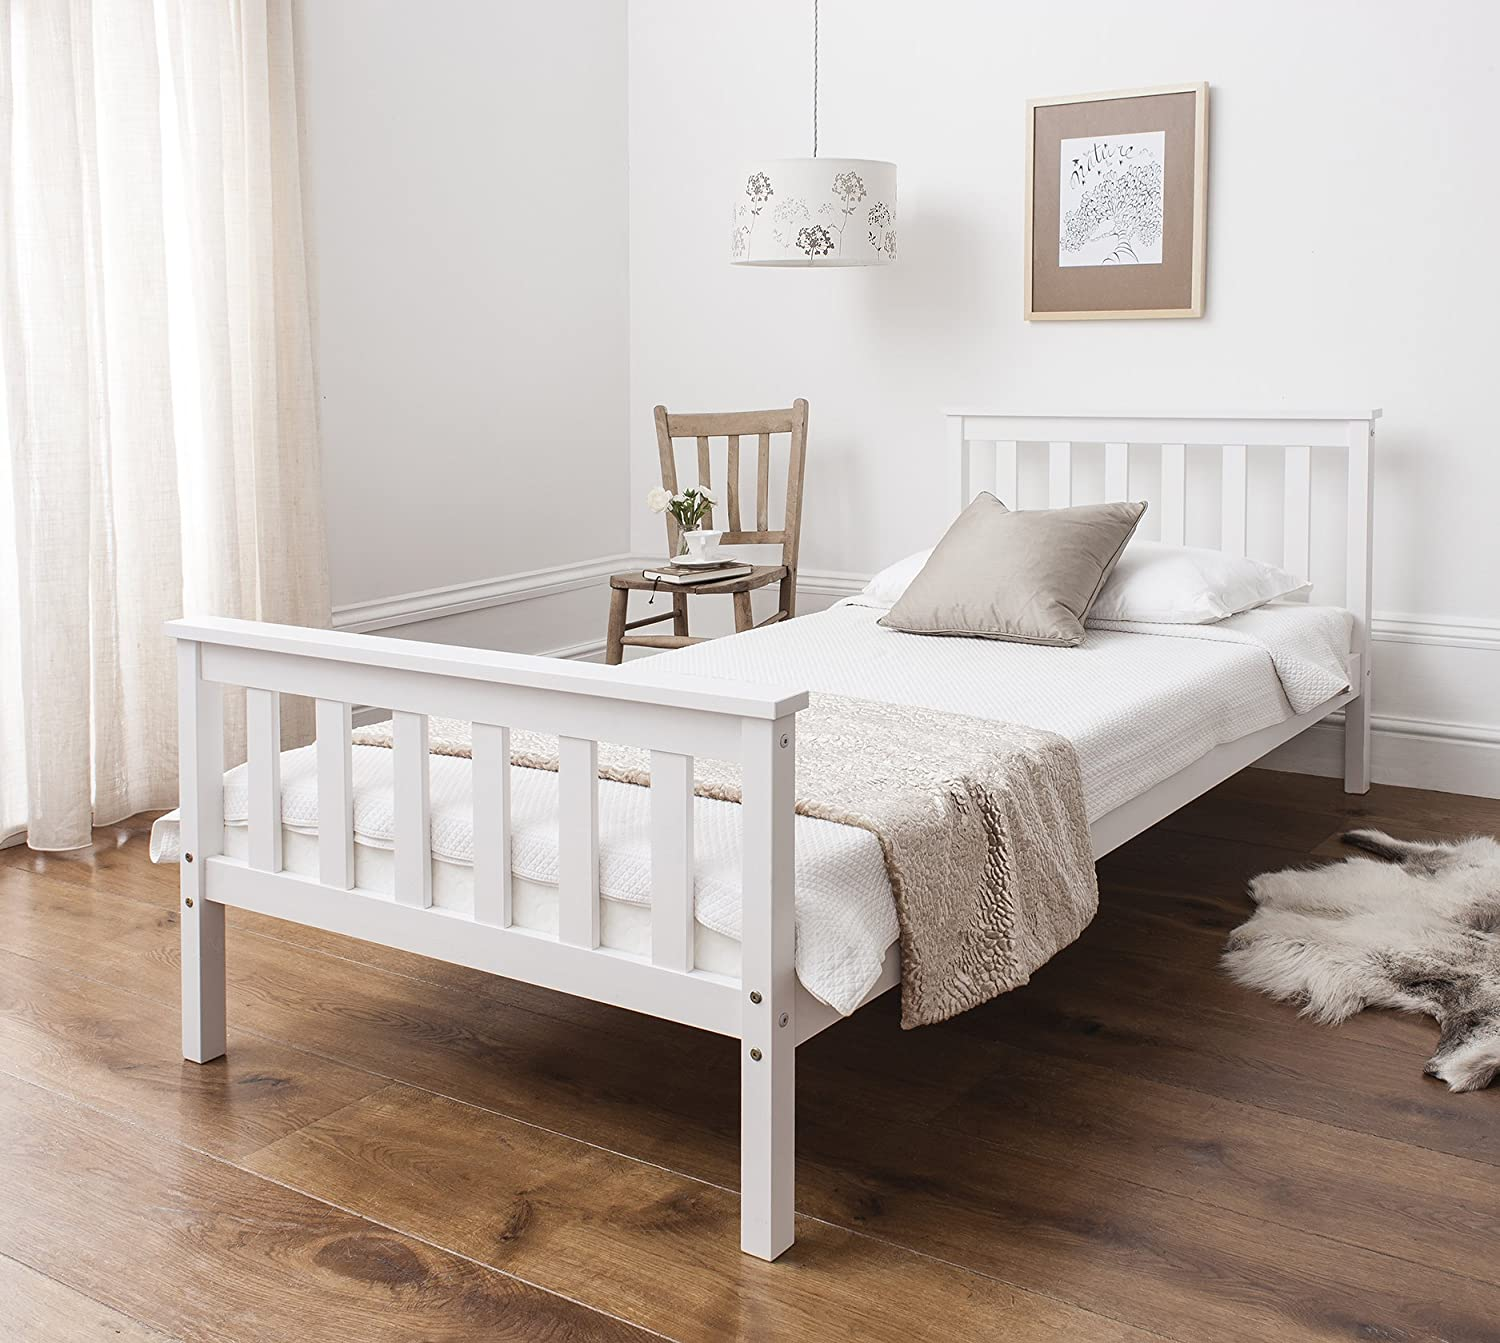 Amazing White Bed Frame Minimalist